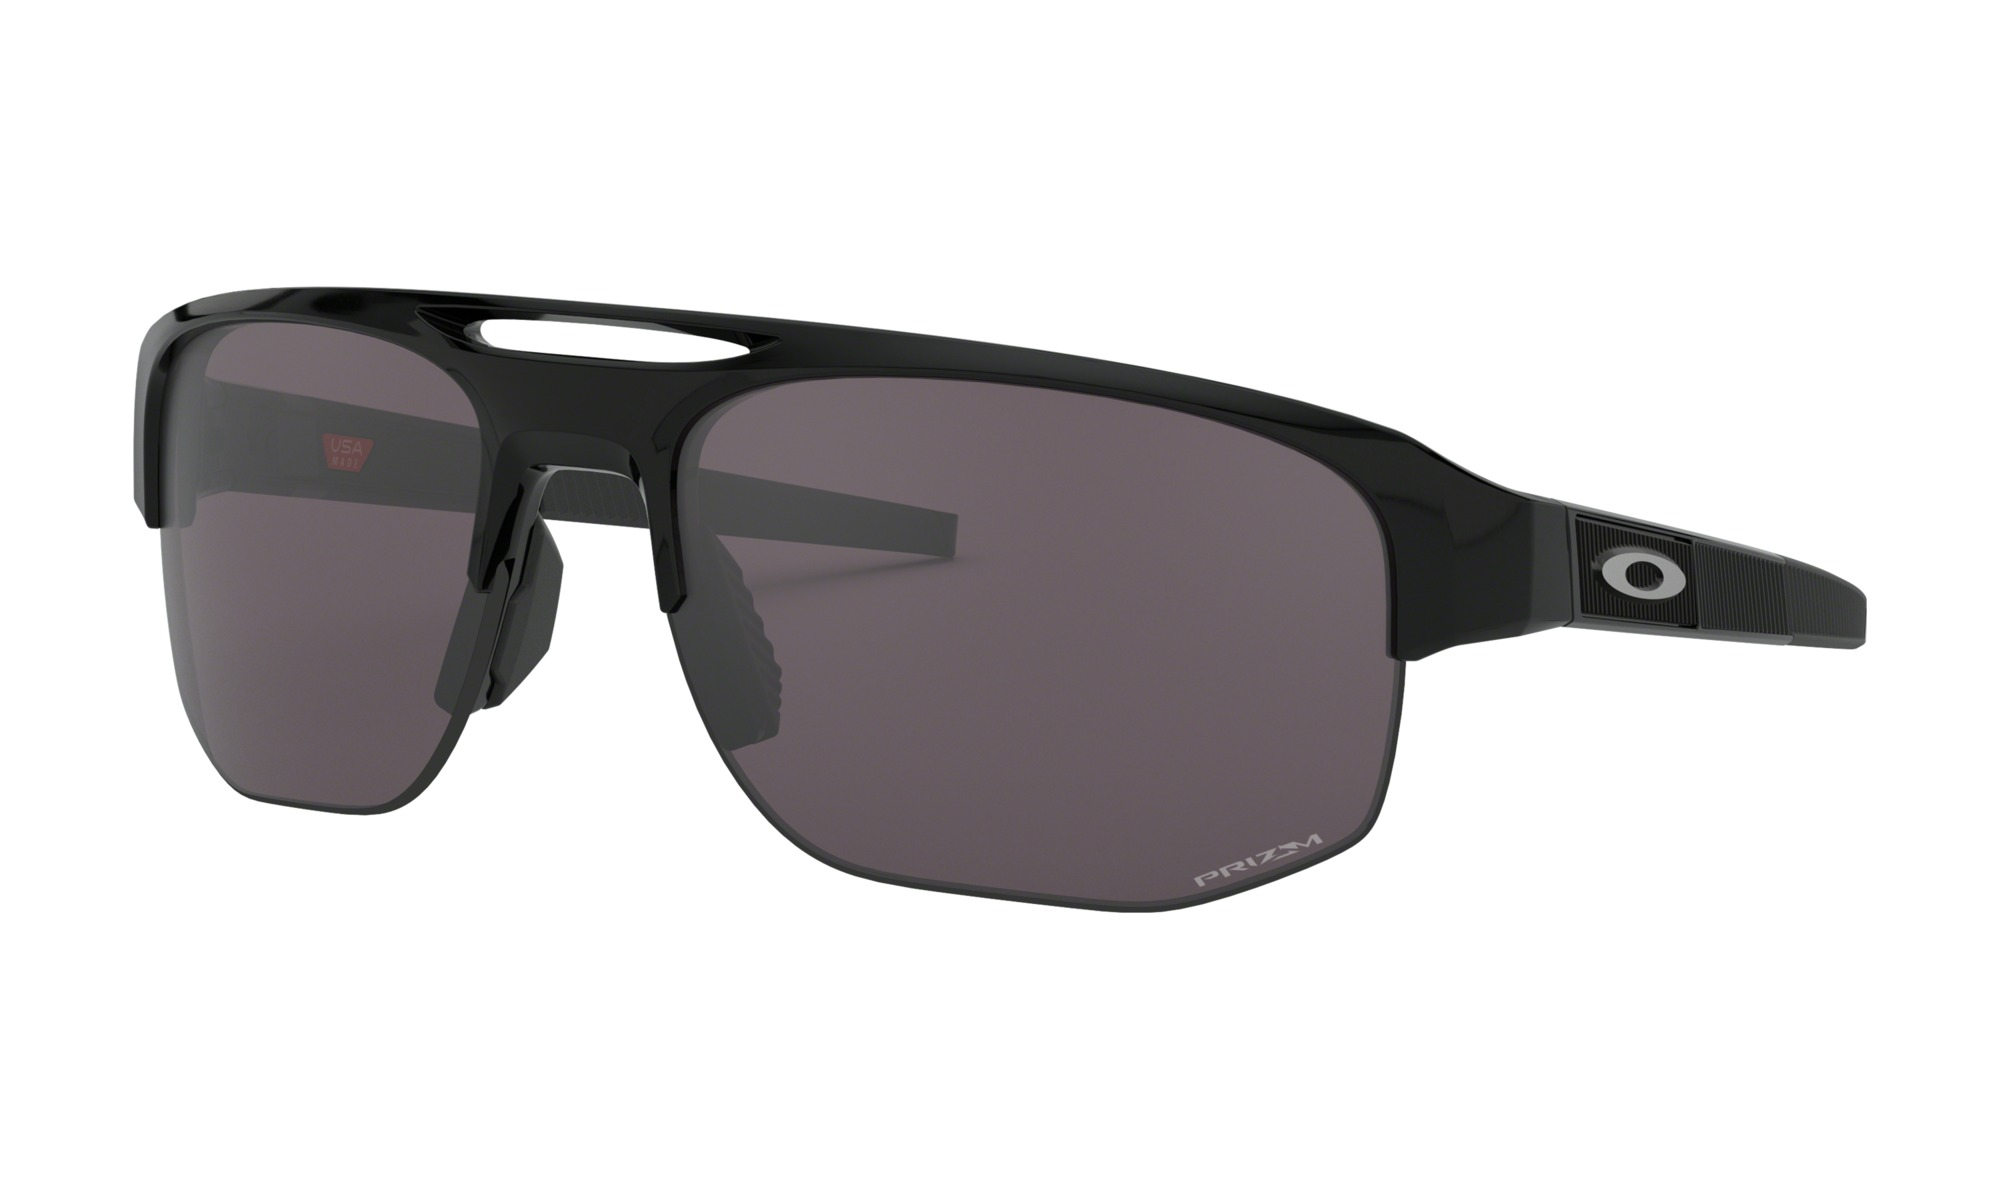 3c259030954f Oakley Mercenary | Baseball Sunglasses, Fashion Sunglasses, High ...